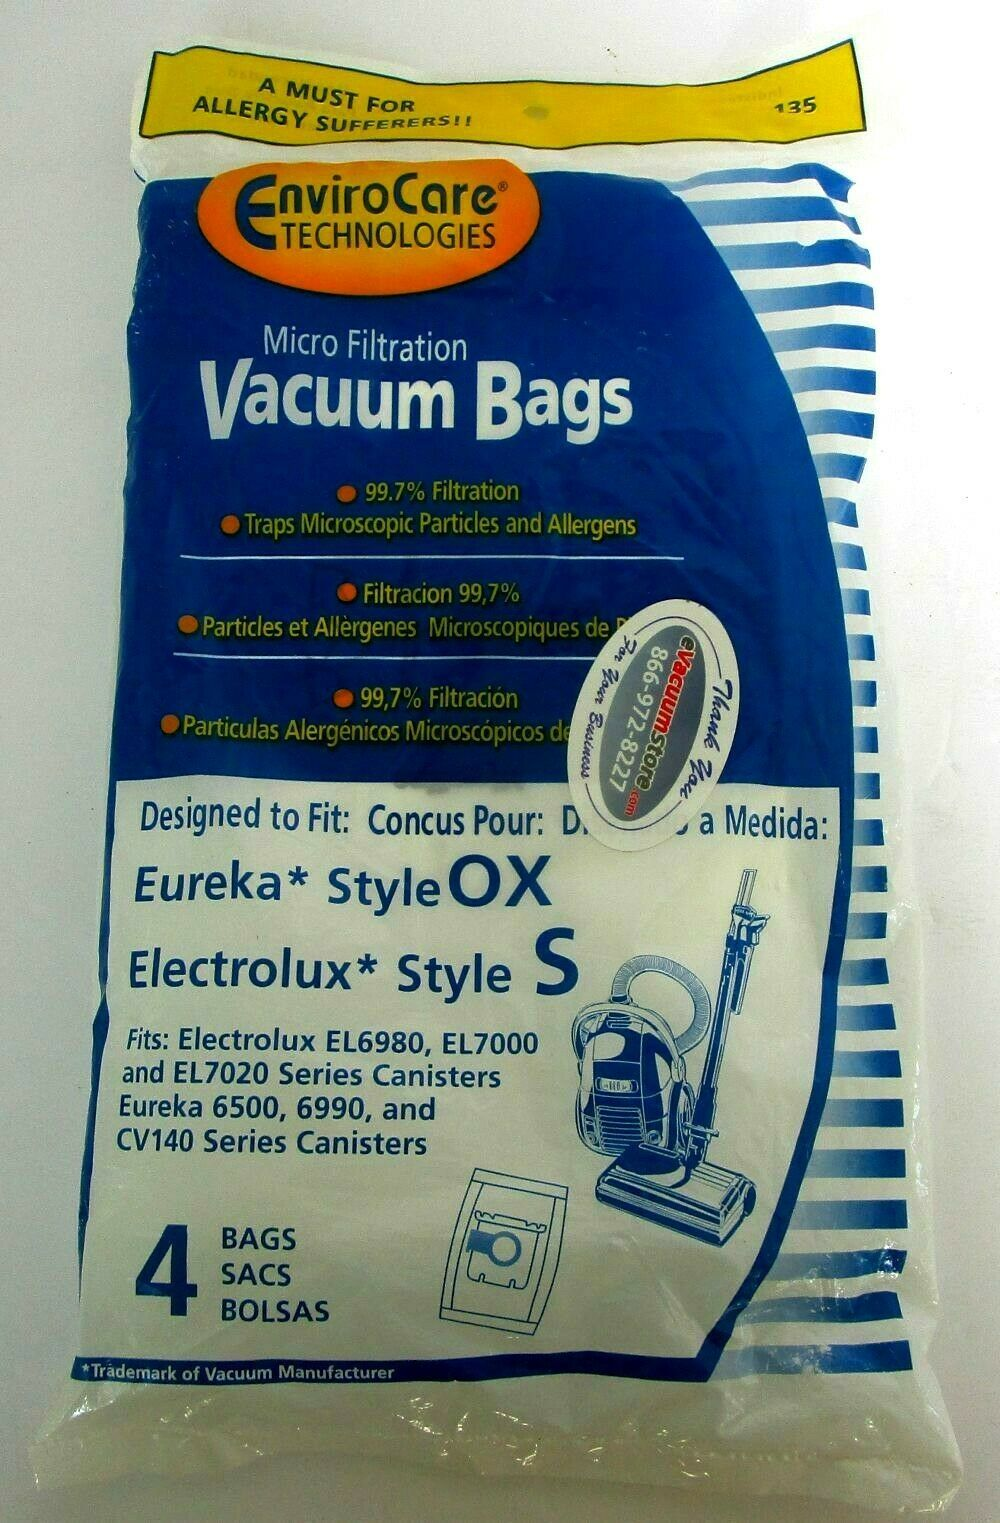 EnviroCare Electrolux S Eureka OX Canister Micro filtration Vacuum Cleaner Bags - $9.75